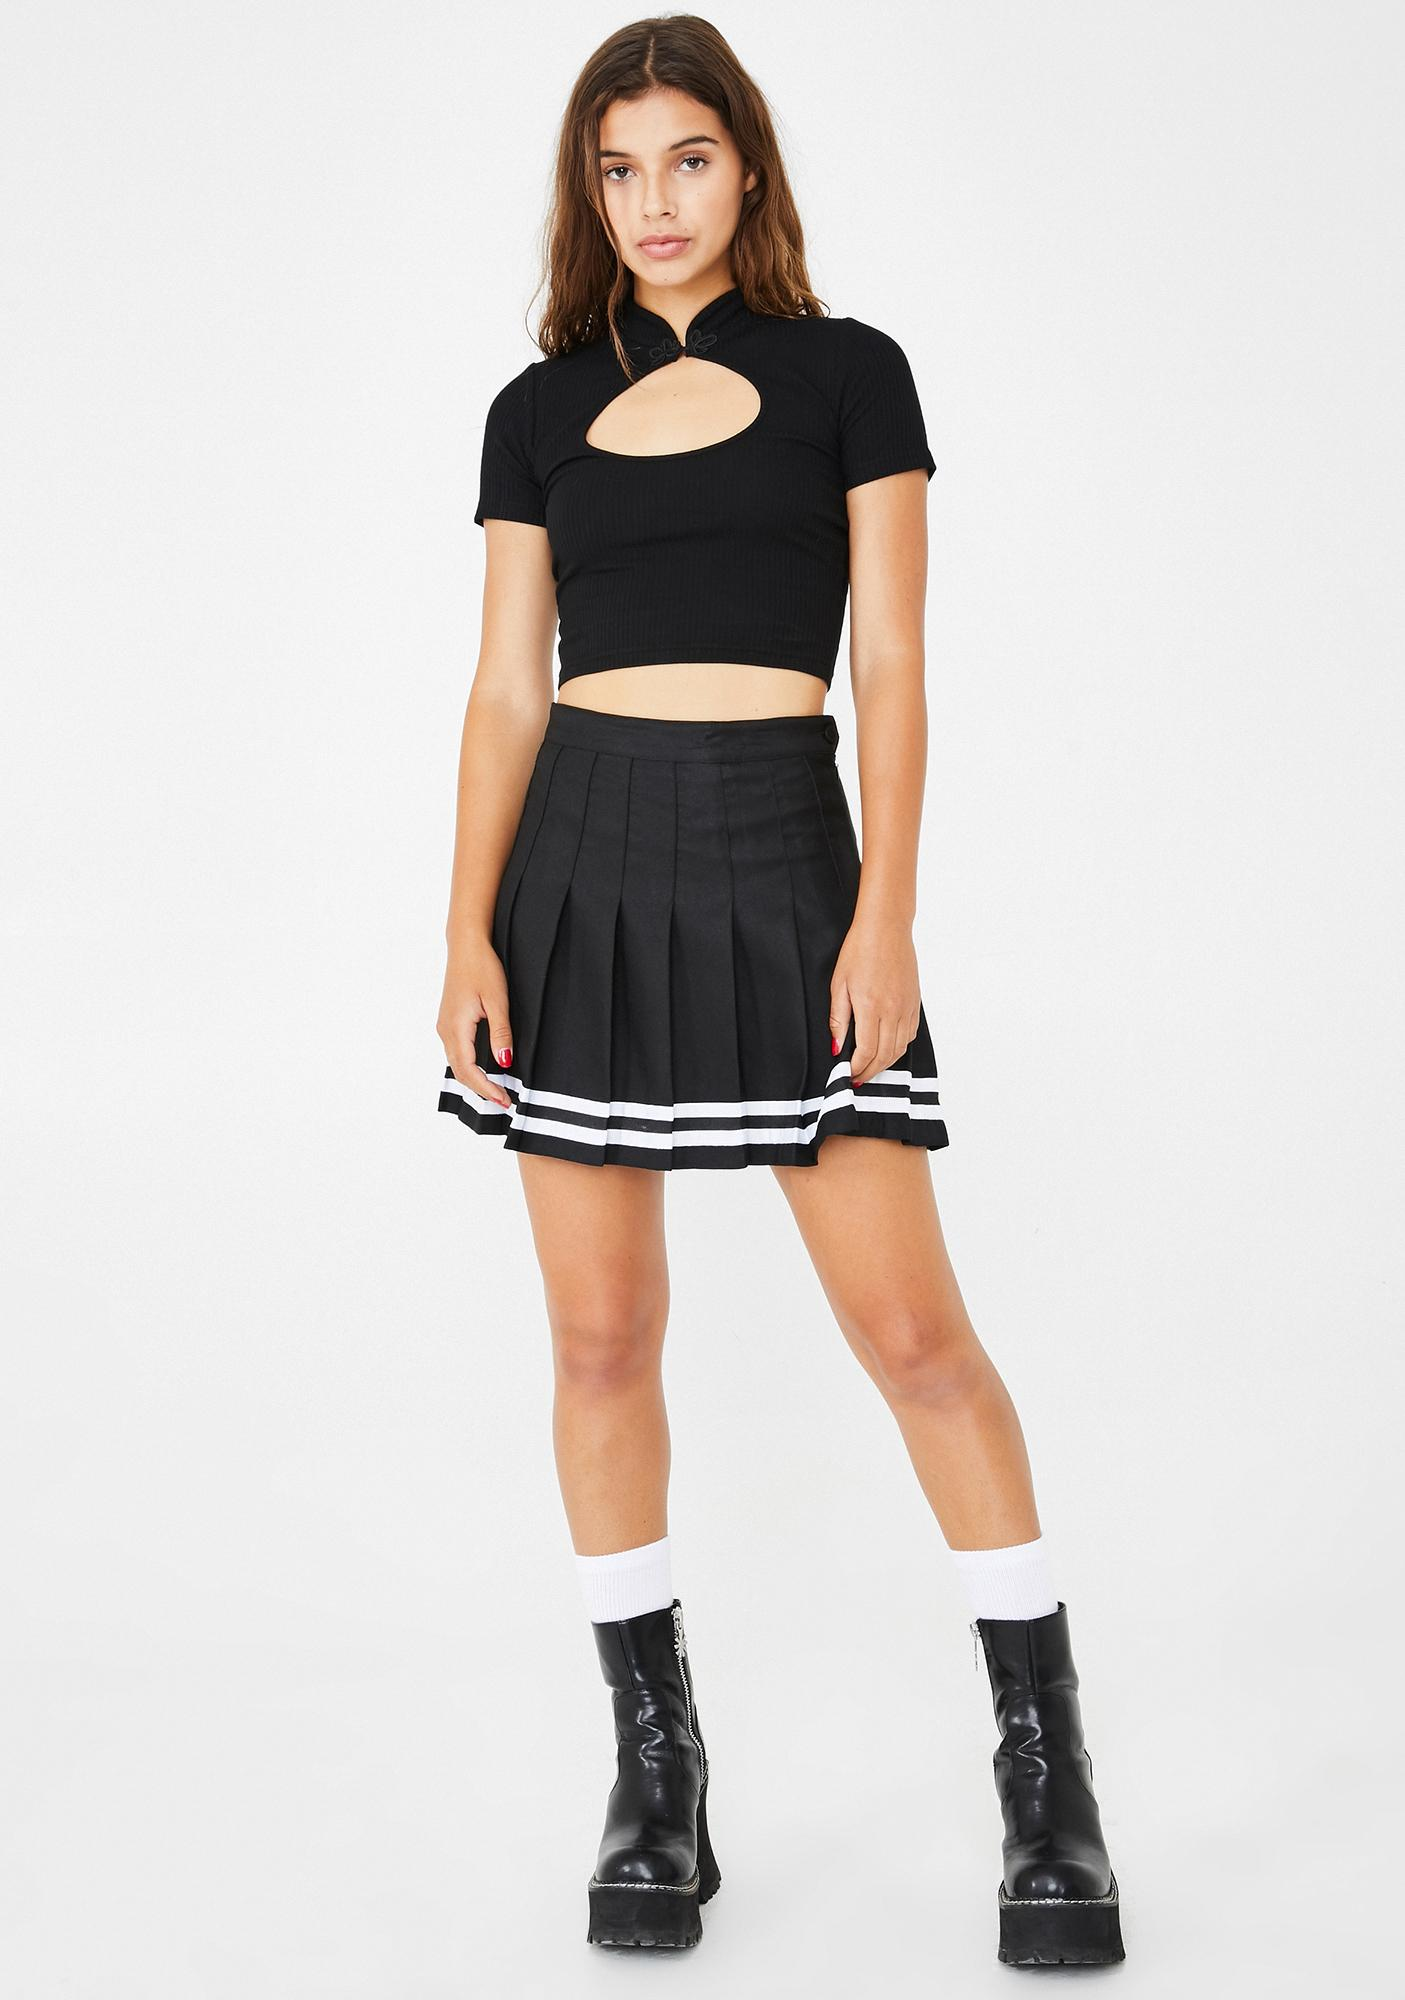 dELiA*s by Dolls Kill Totally Over It Crop Top